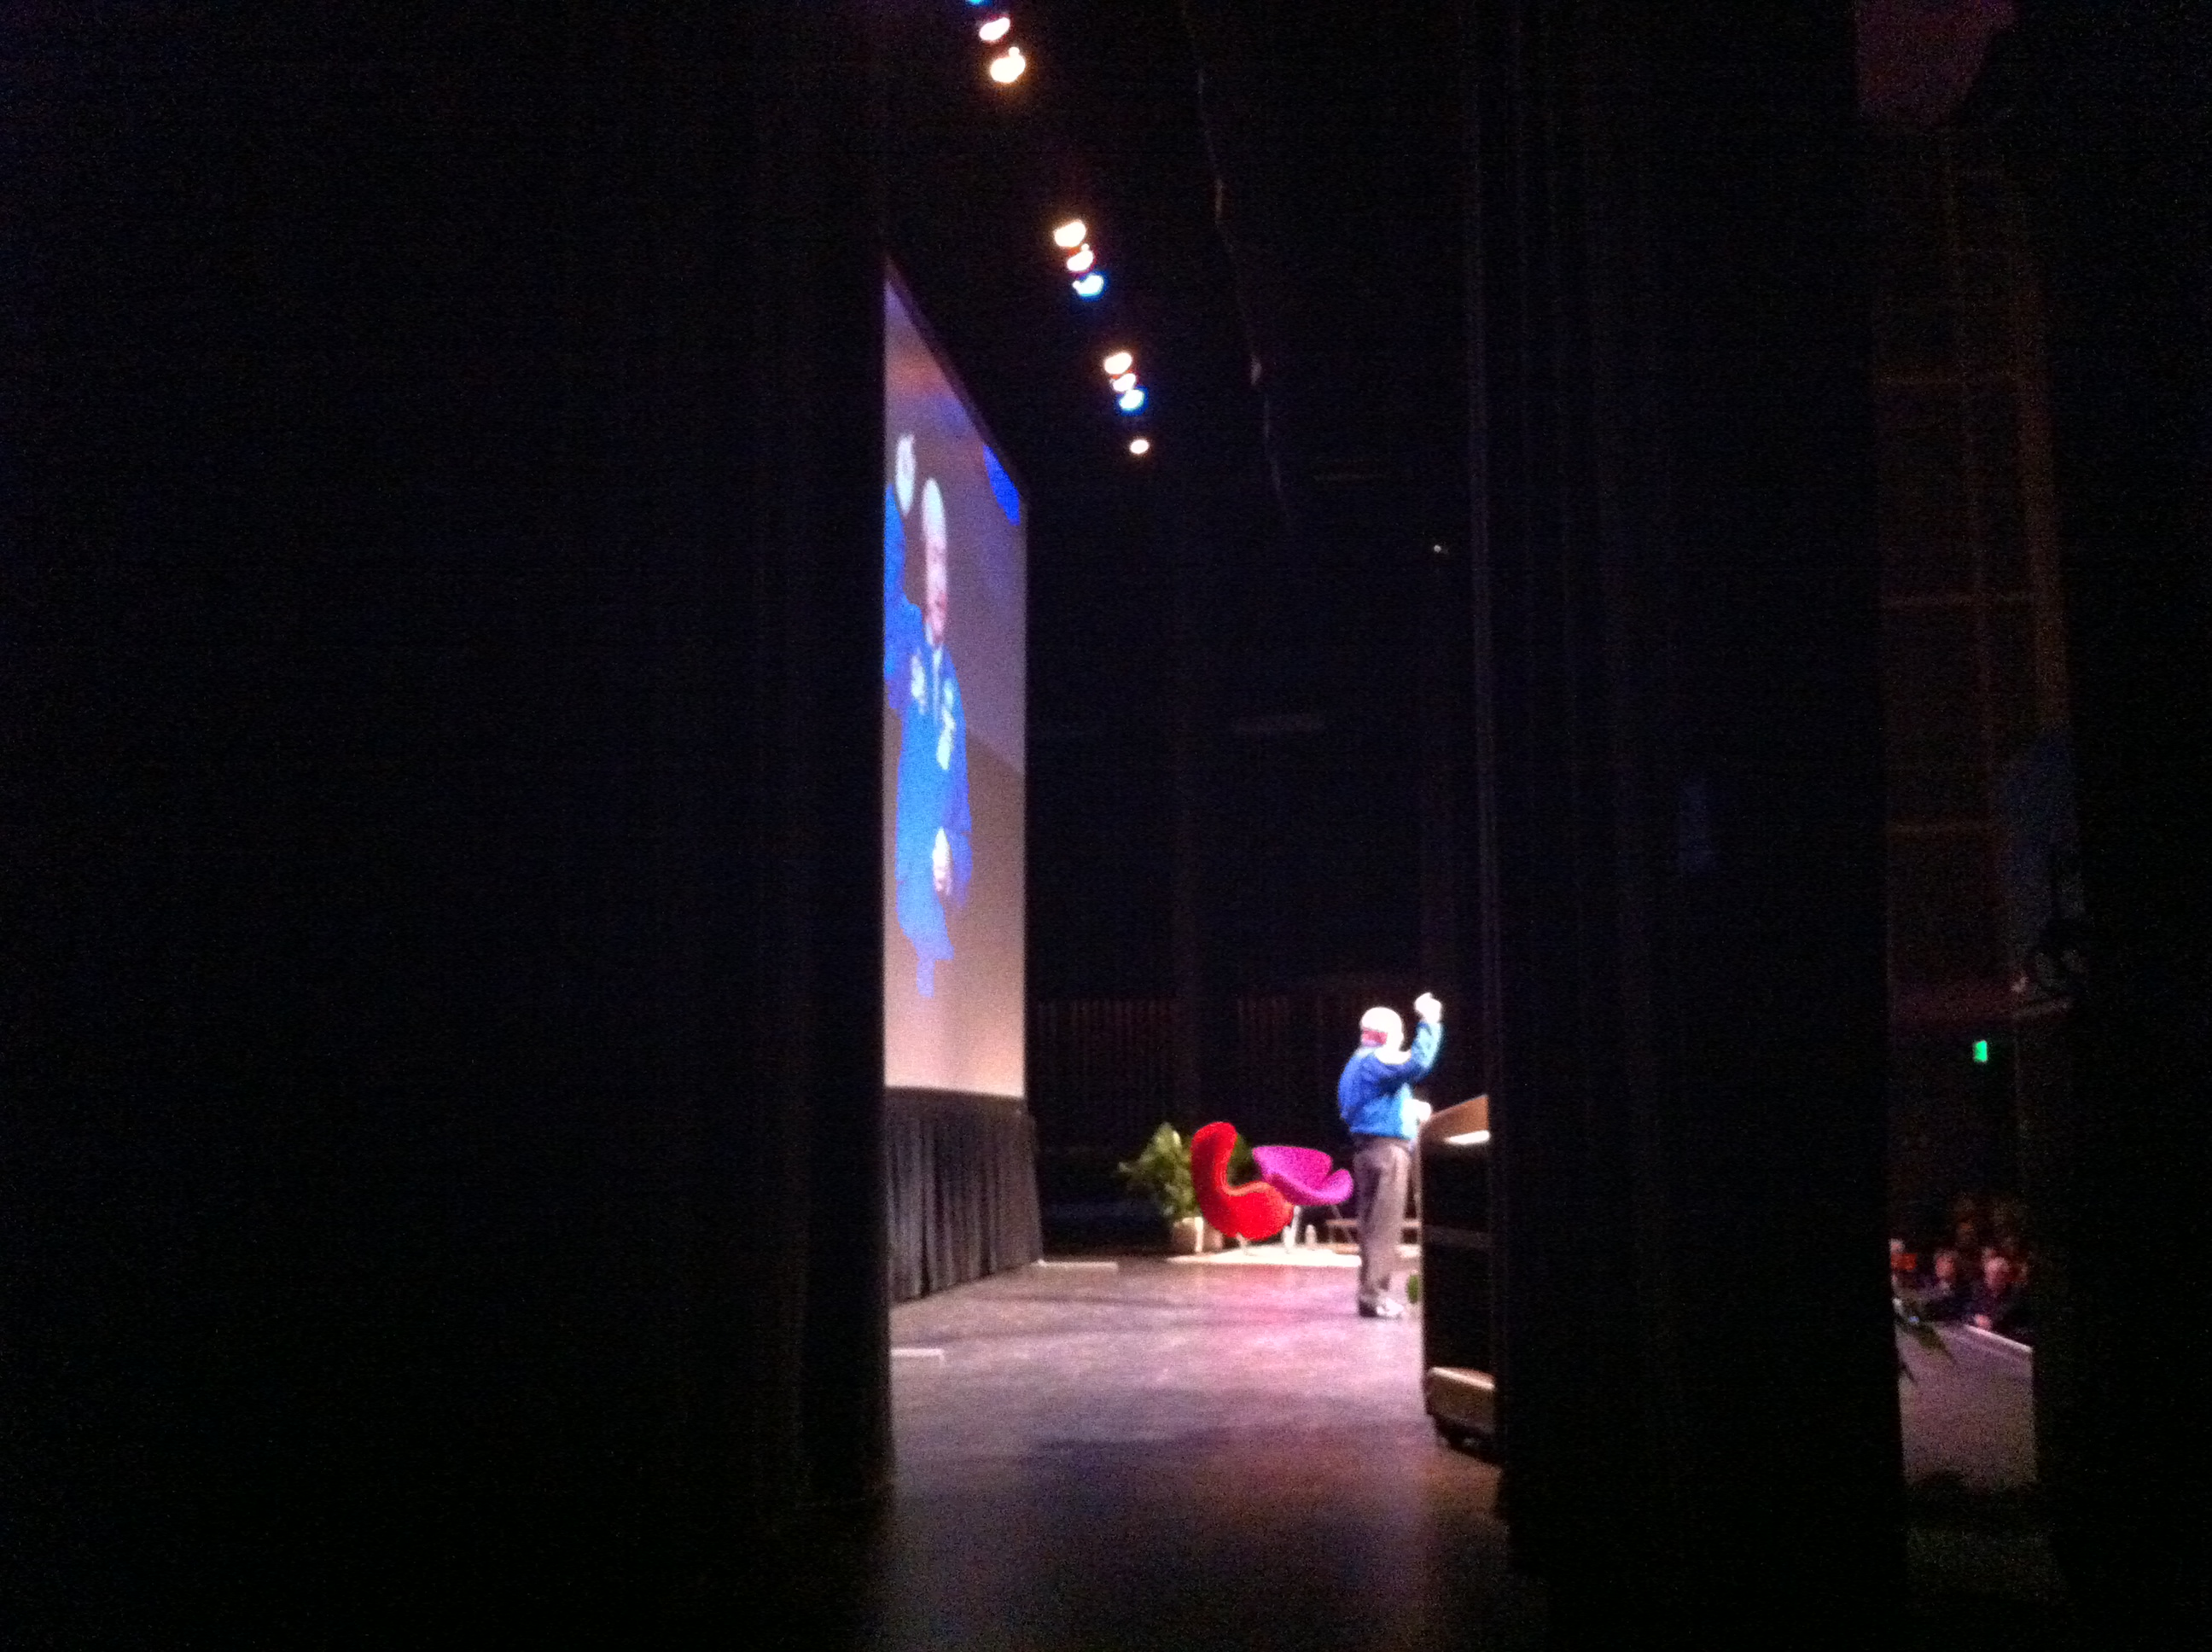 Capt. Mark Kelly Owning the Stage during the Ringling College Library Association's Town Hall Lecture in Sarasota, March 11, 2013